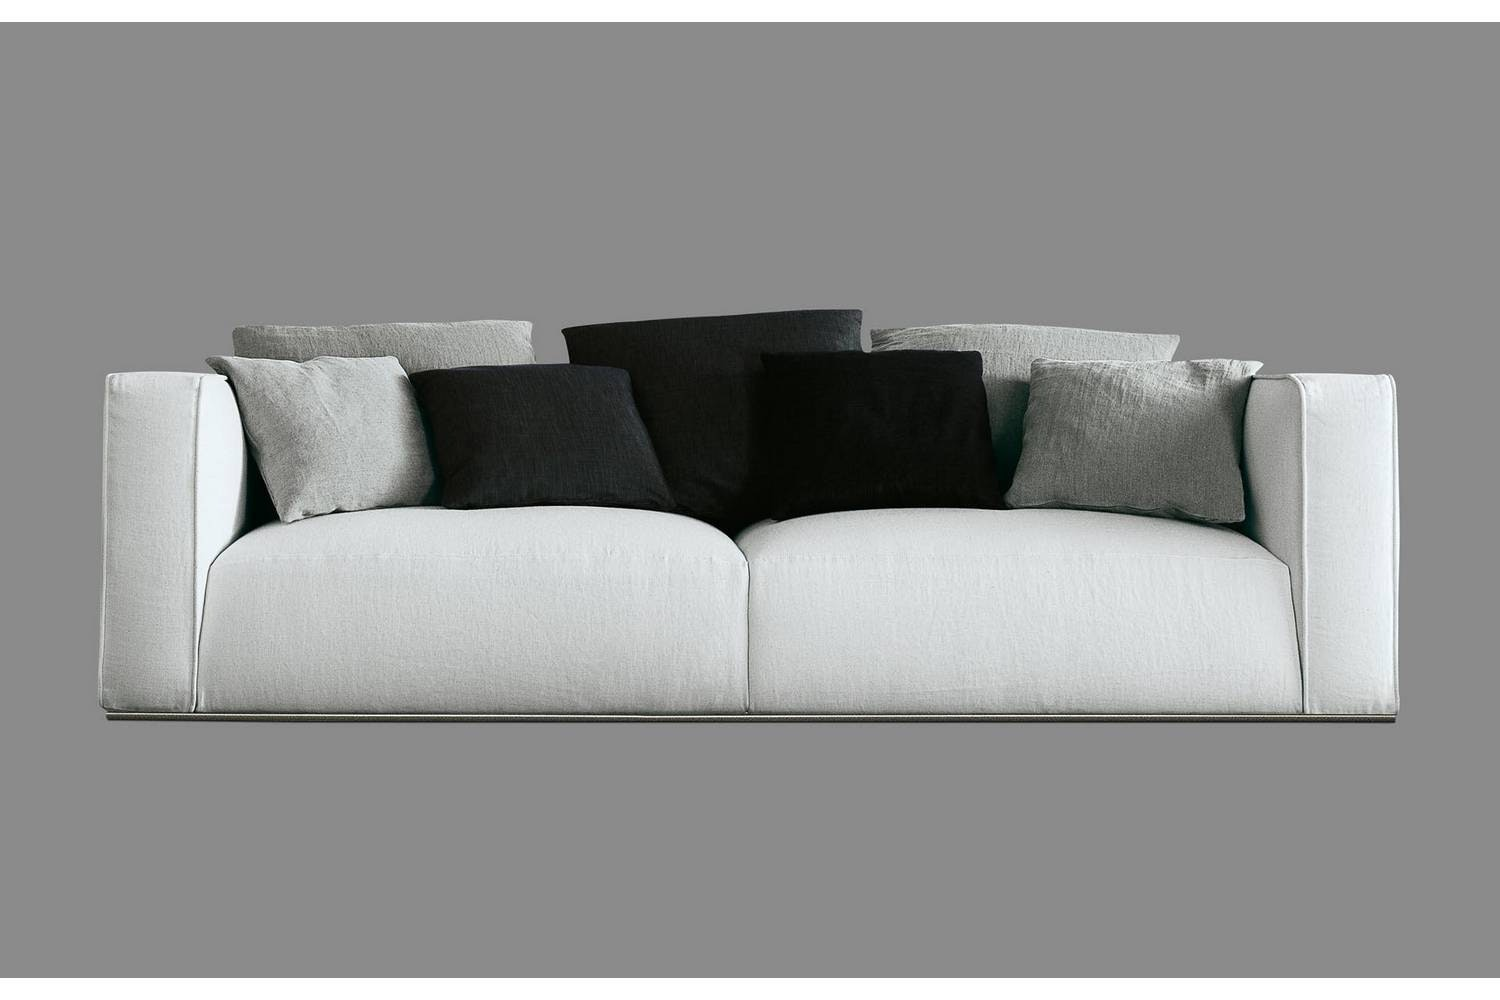 Shangai Sofa by Carlo Colombo for Poliform